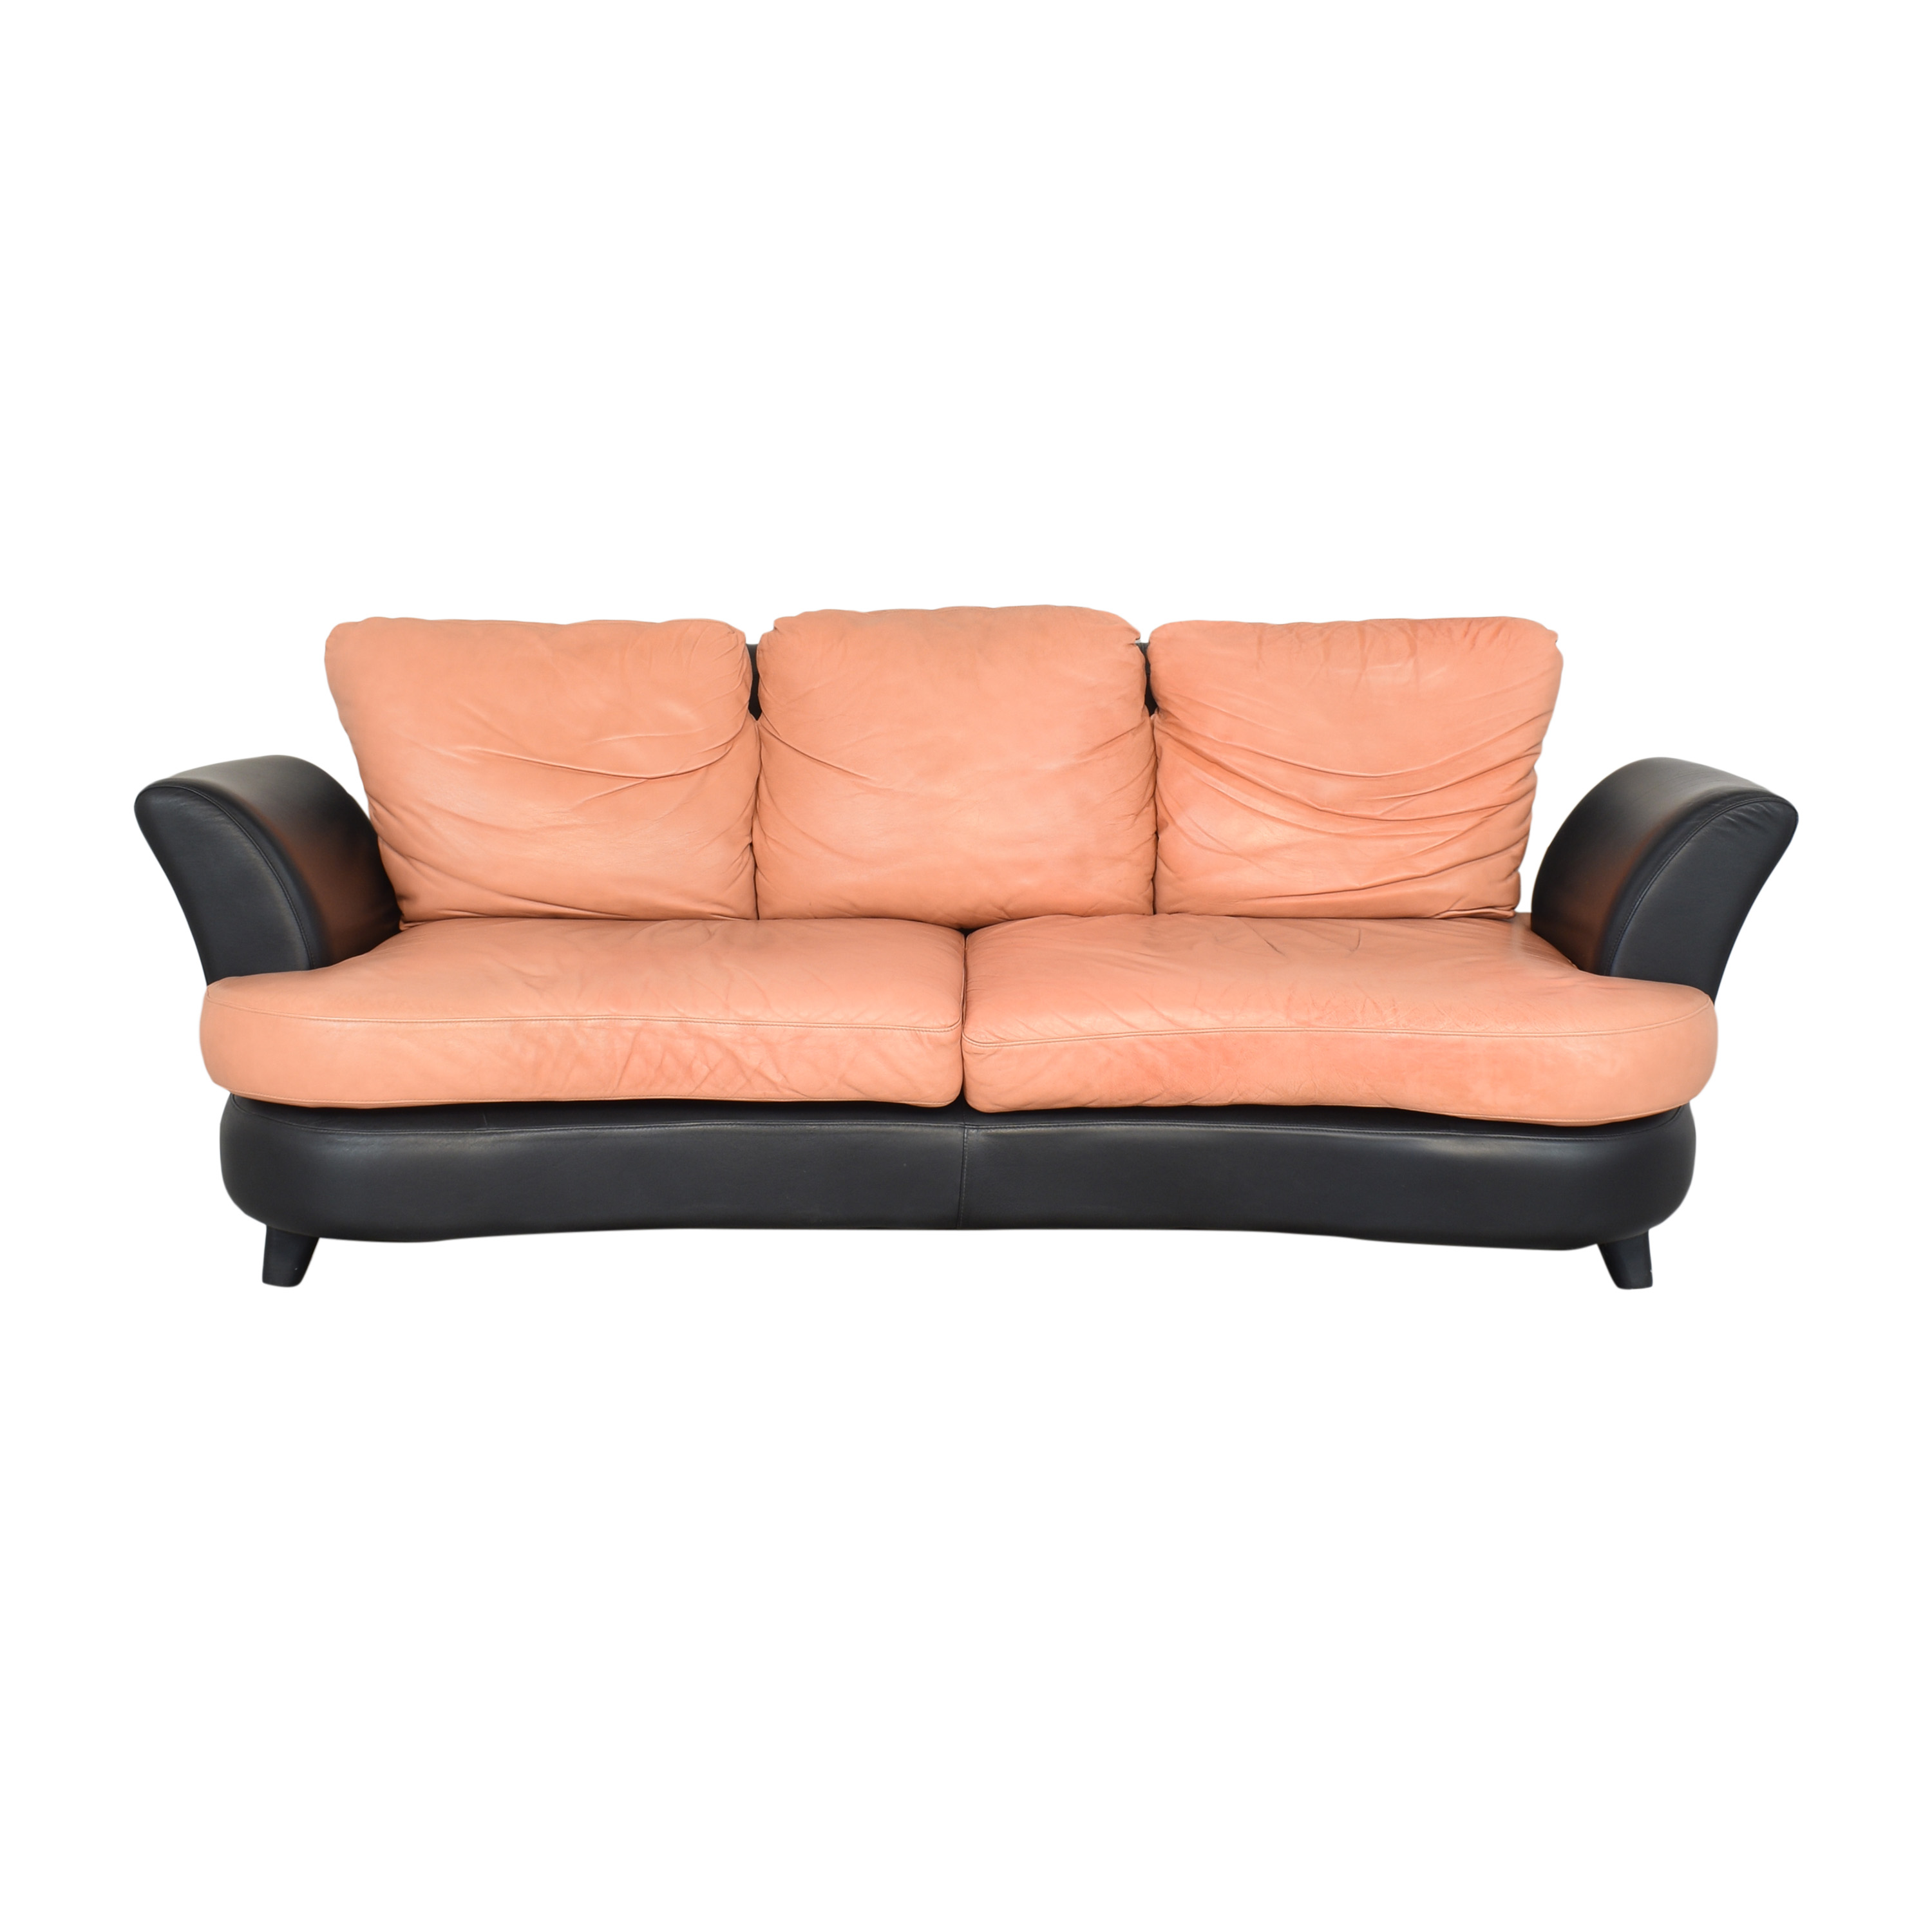 Two Tone Curved Sofa